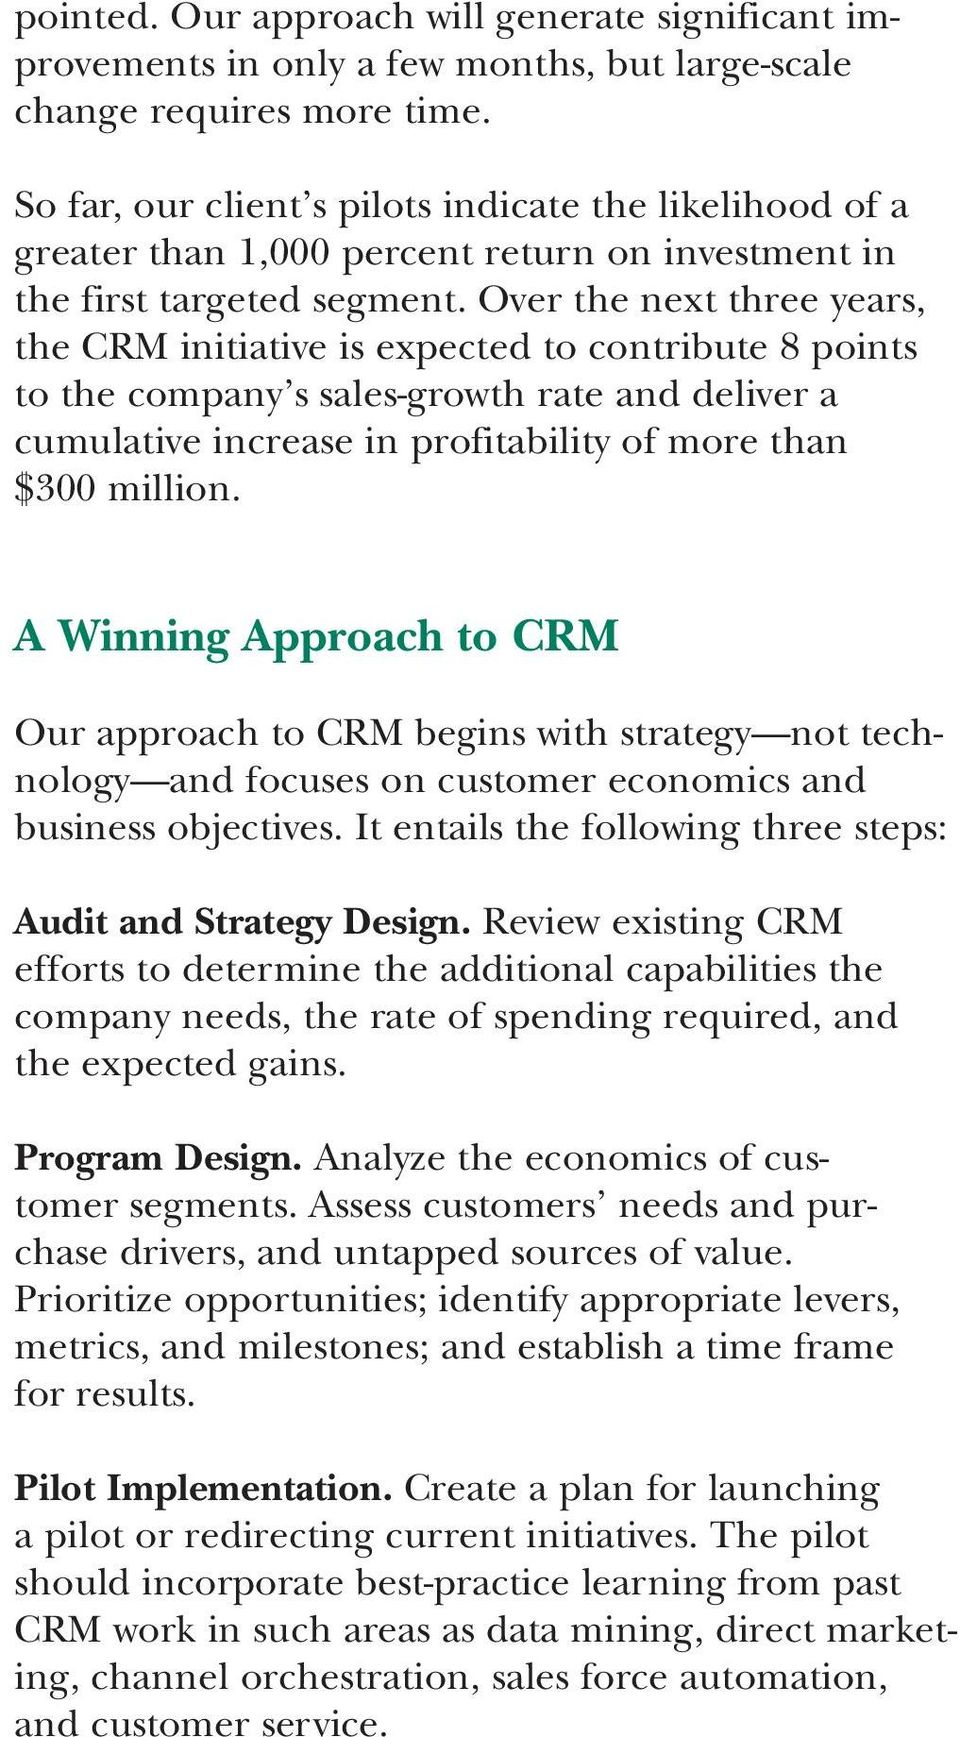 Over the next three years, the CRM initiative is expected to contribute 8 points to the company s sales-growth rate and deliver a cumulative increase in profitability of more than $300 million.